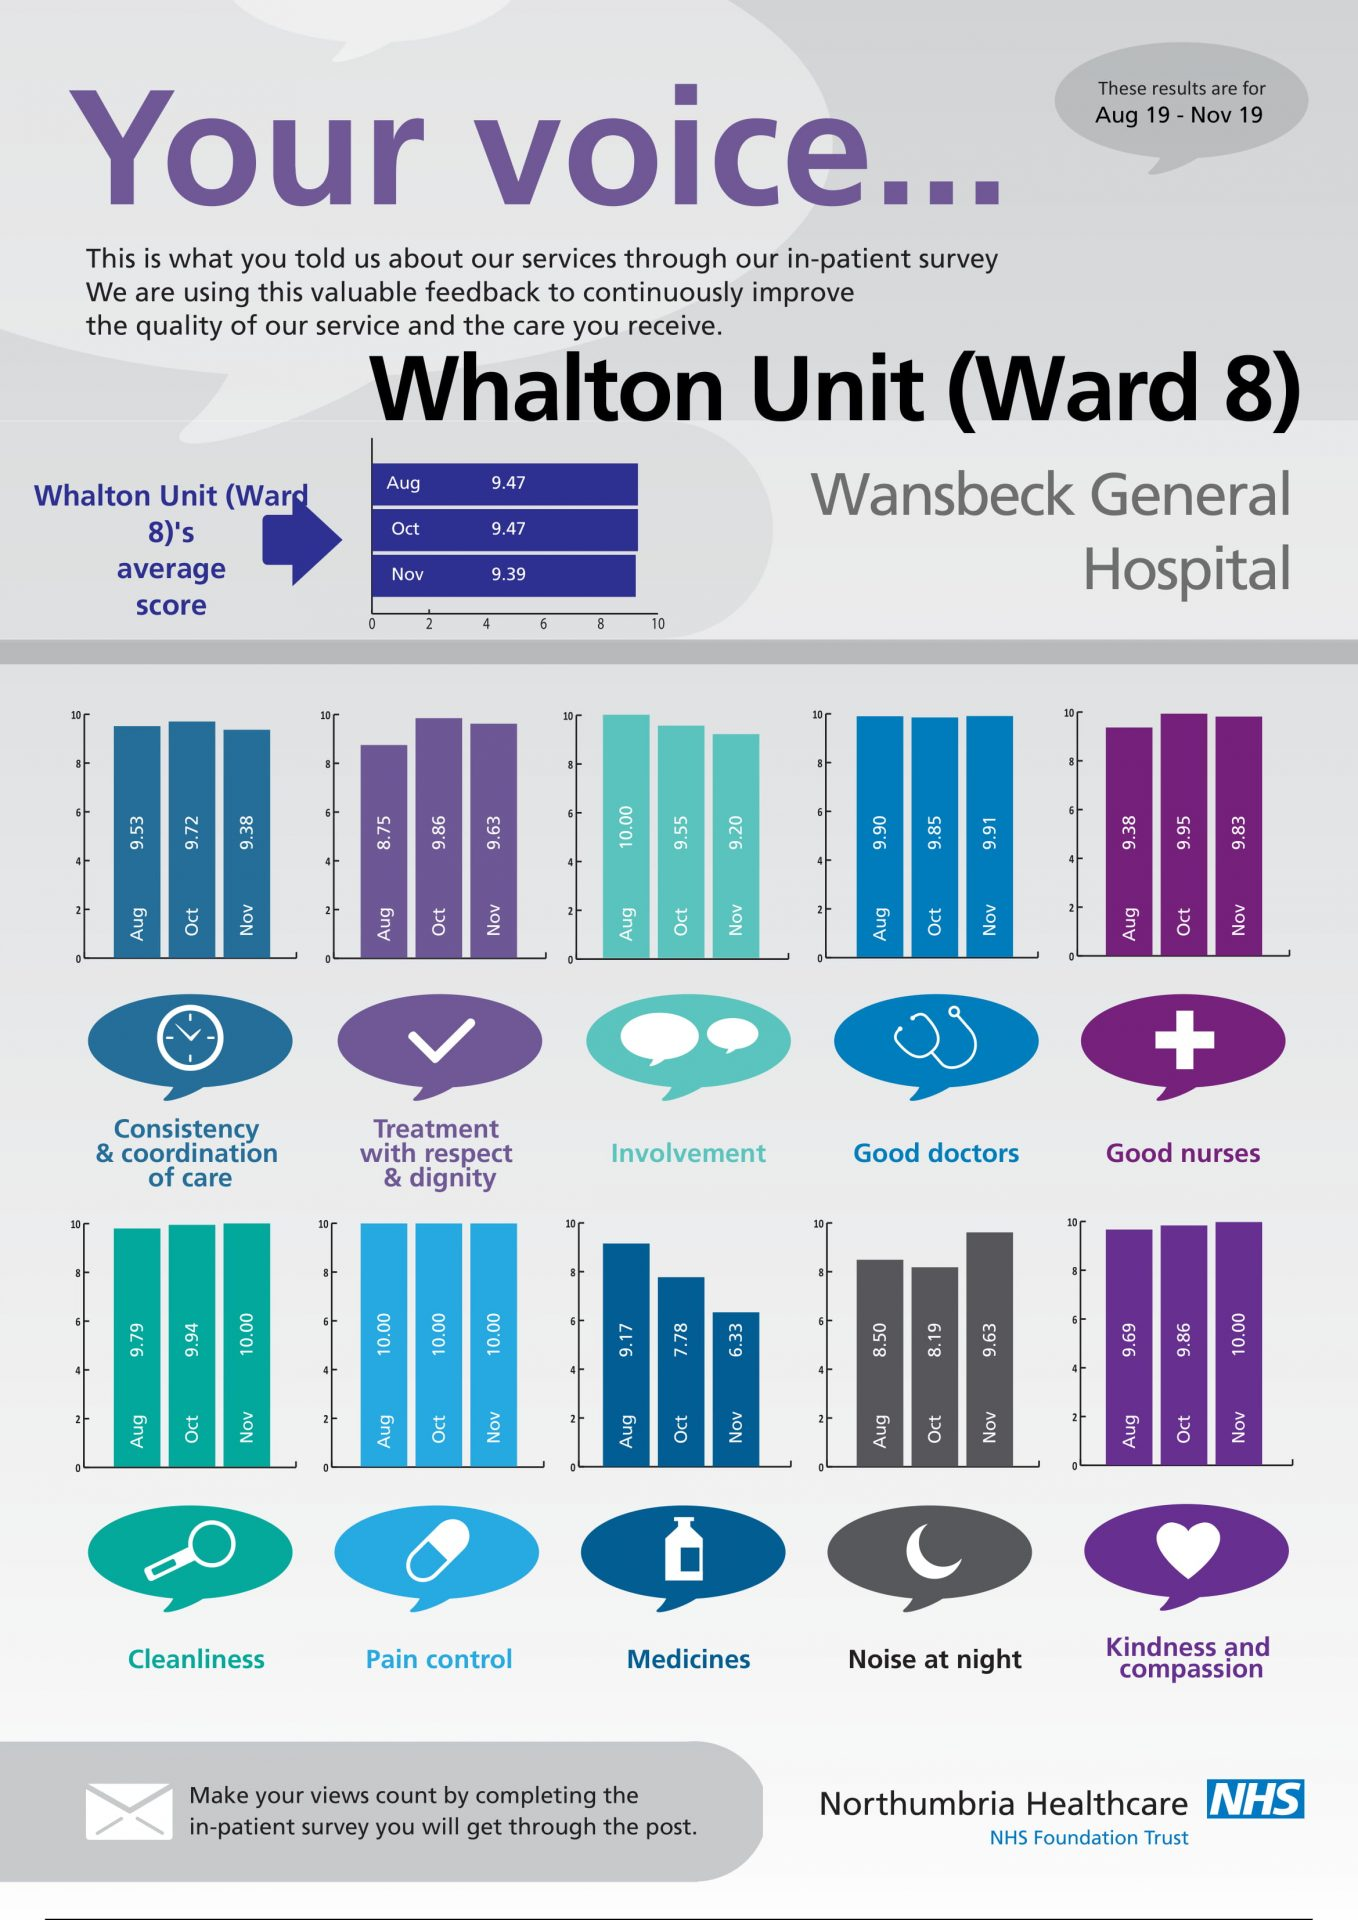 Wansbeck General Hospital - Whalton Unit (Ward 8)-1